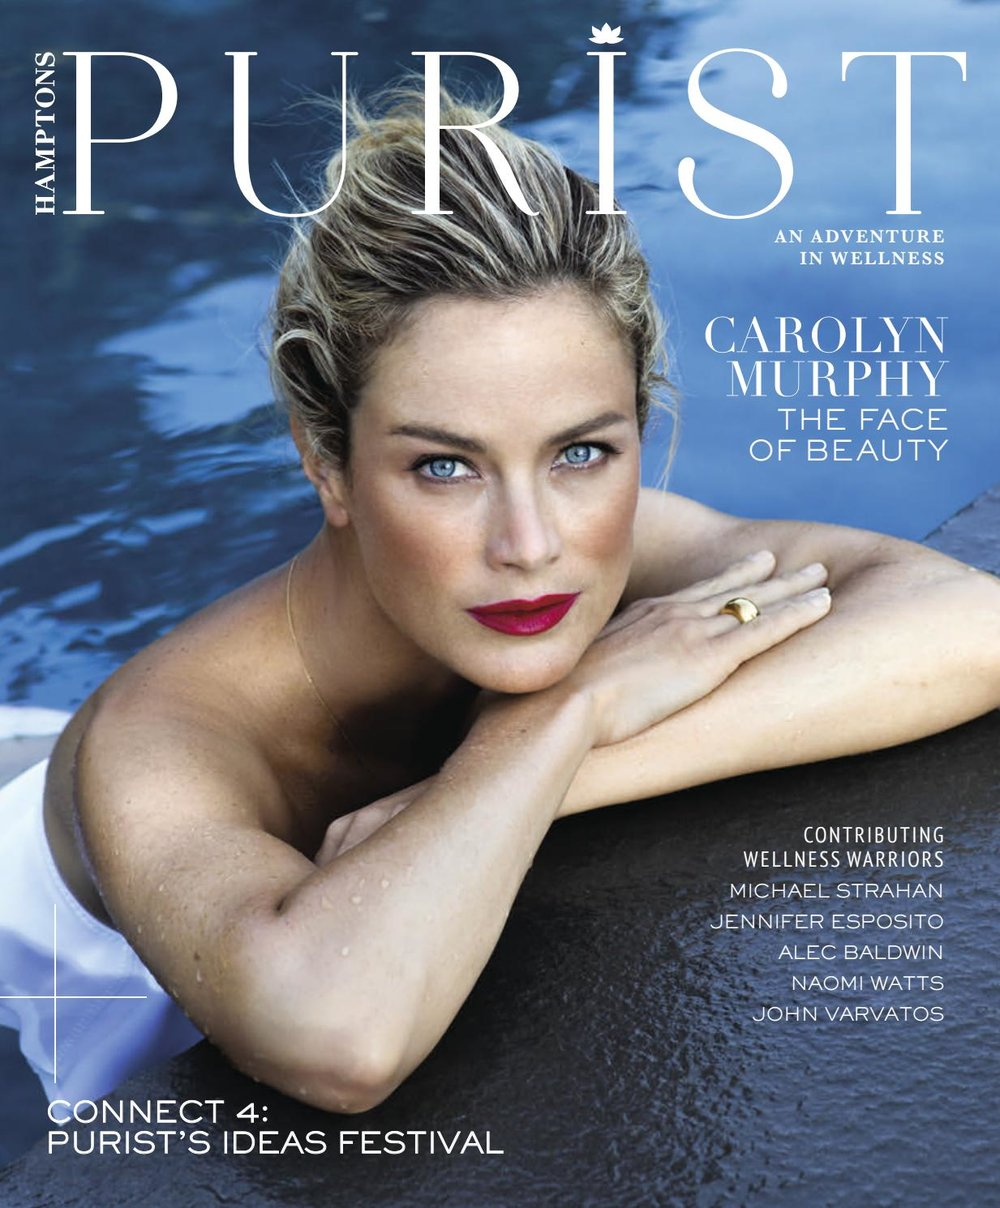 Purist Hamptons  AMY HILL'S SOOTHING SPACES  READ ARTICLE   VIEW DIGITAL ISSUE